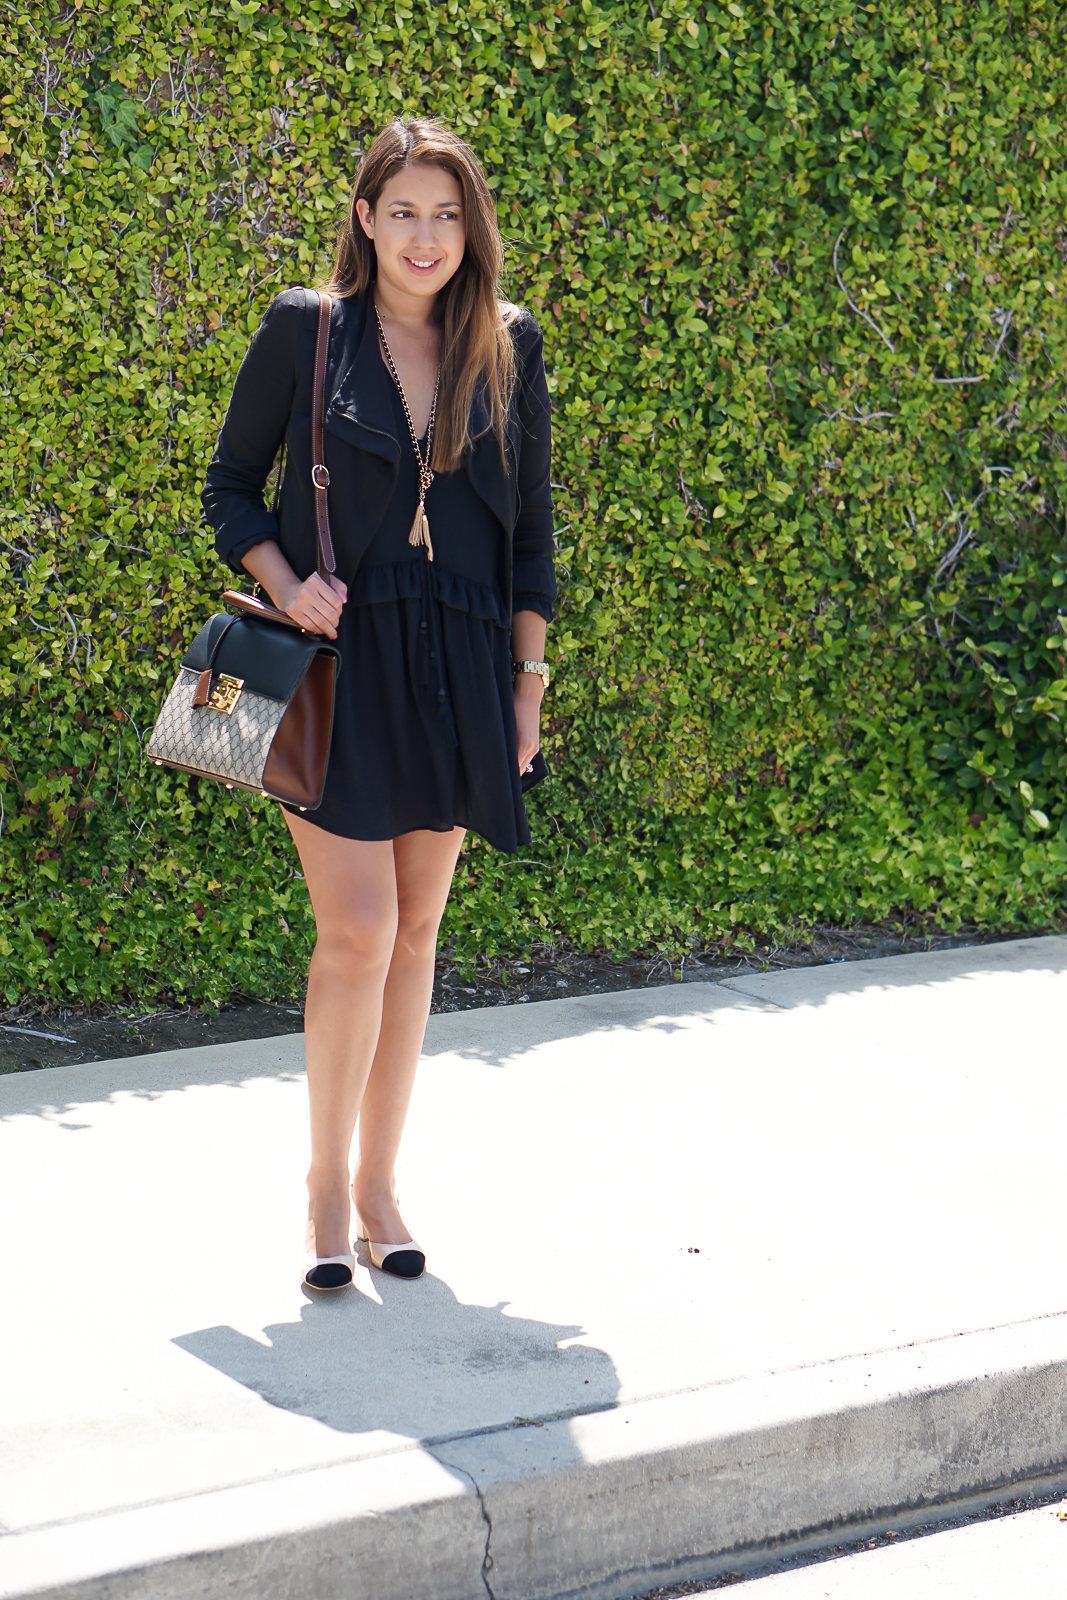 Chanel Slingback Dupes, Chanel Dupe, Splurge vs Save, H&M Dress, Ivanka Trump Heels, Guess Necklace, Gucci Bag,